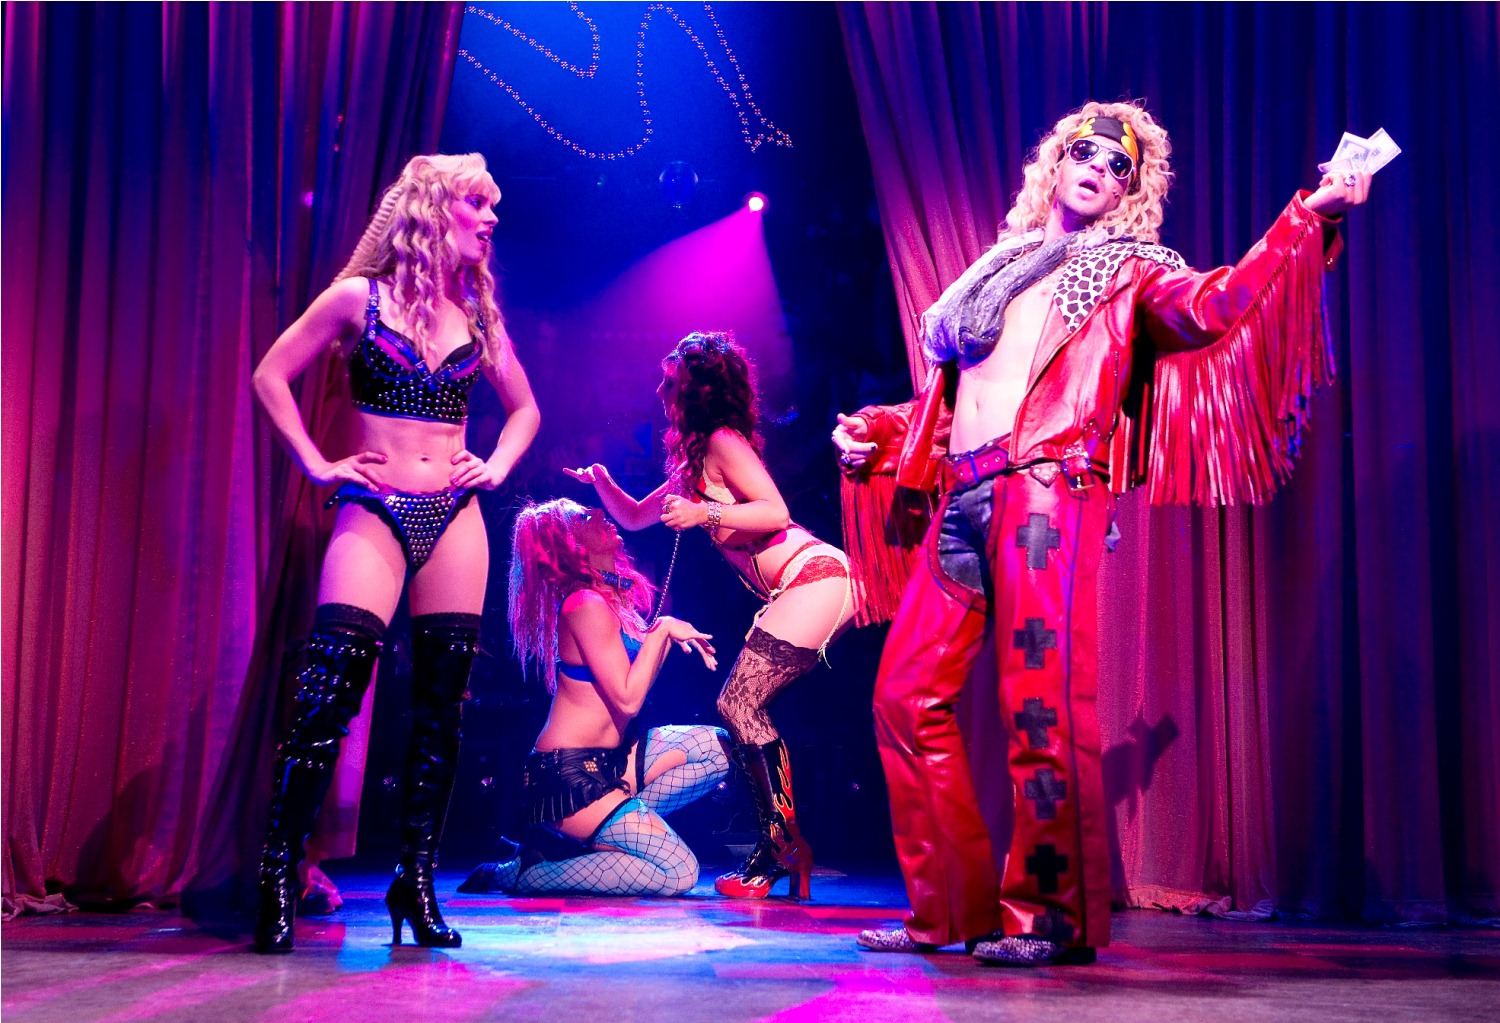 Rock of Ages Sherrie Stacee Jaxx